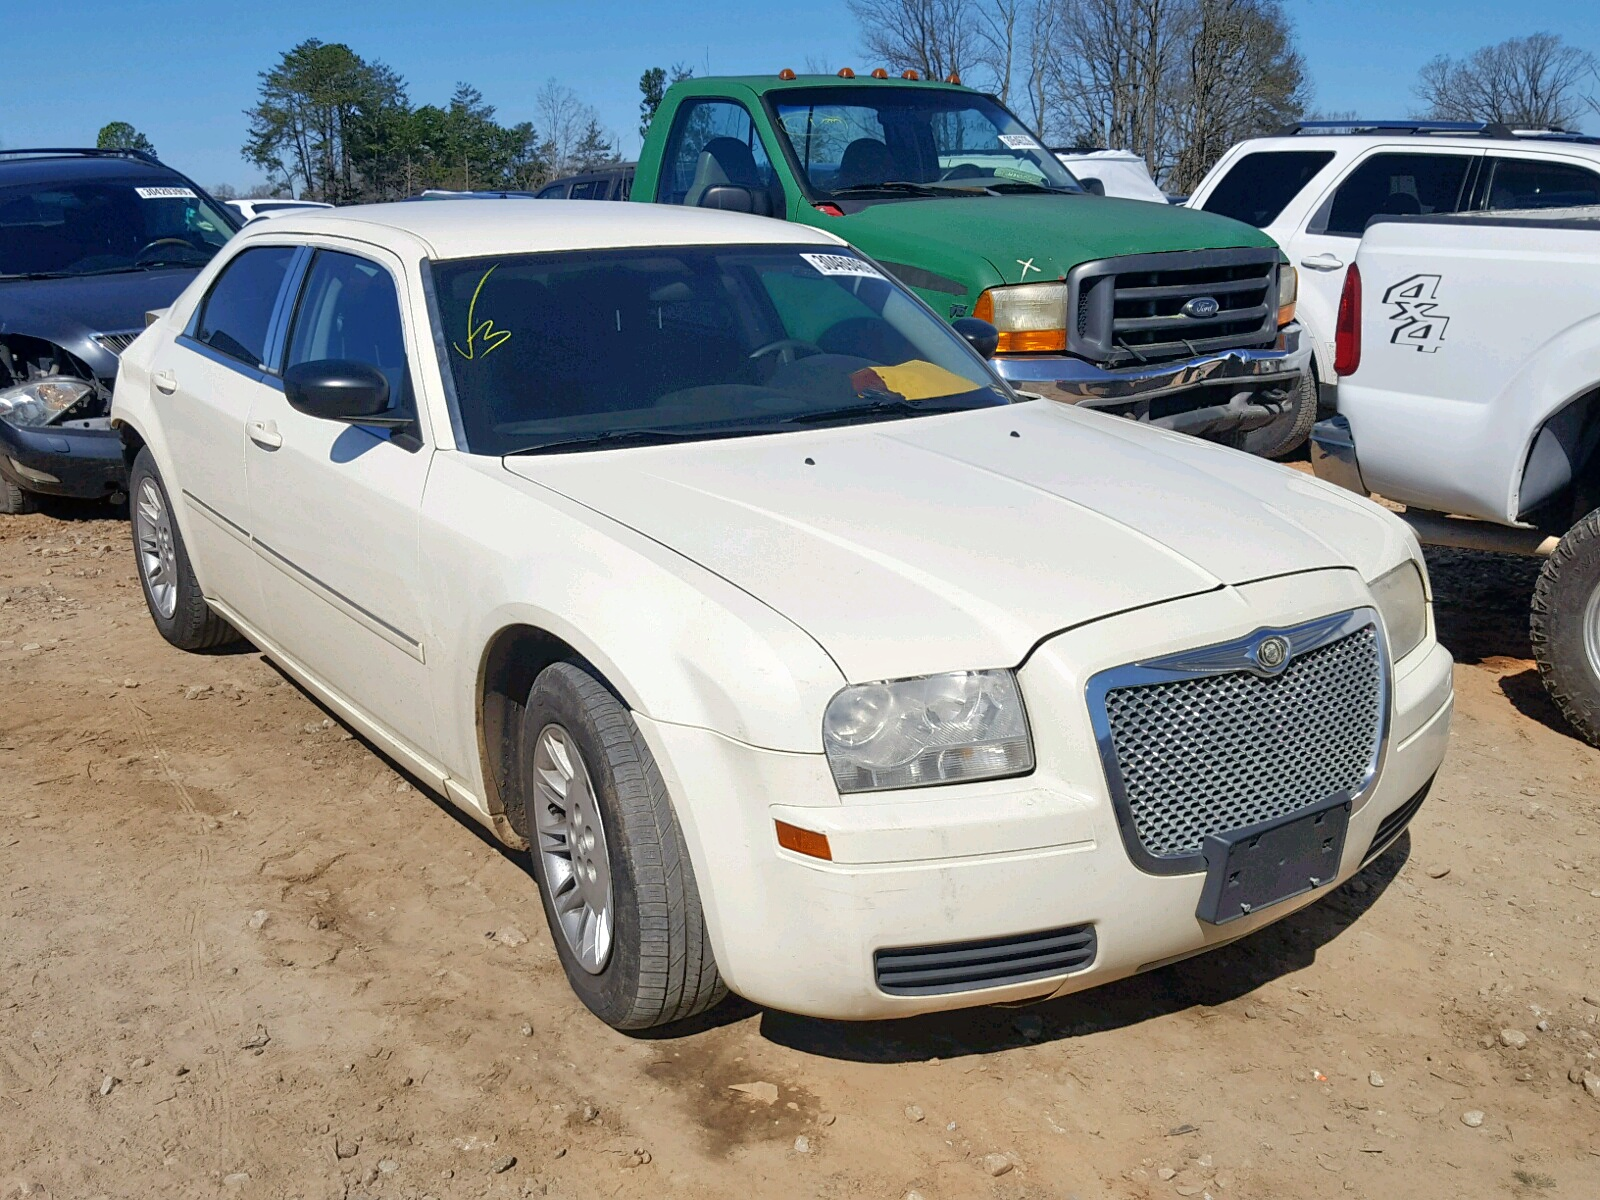 Salvage 2007 Chrysler 300 for sale